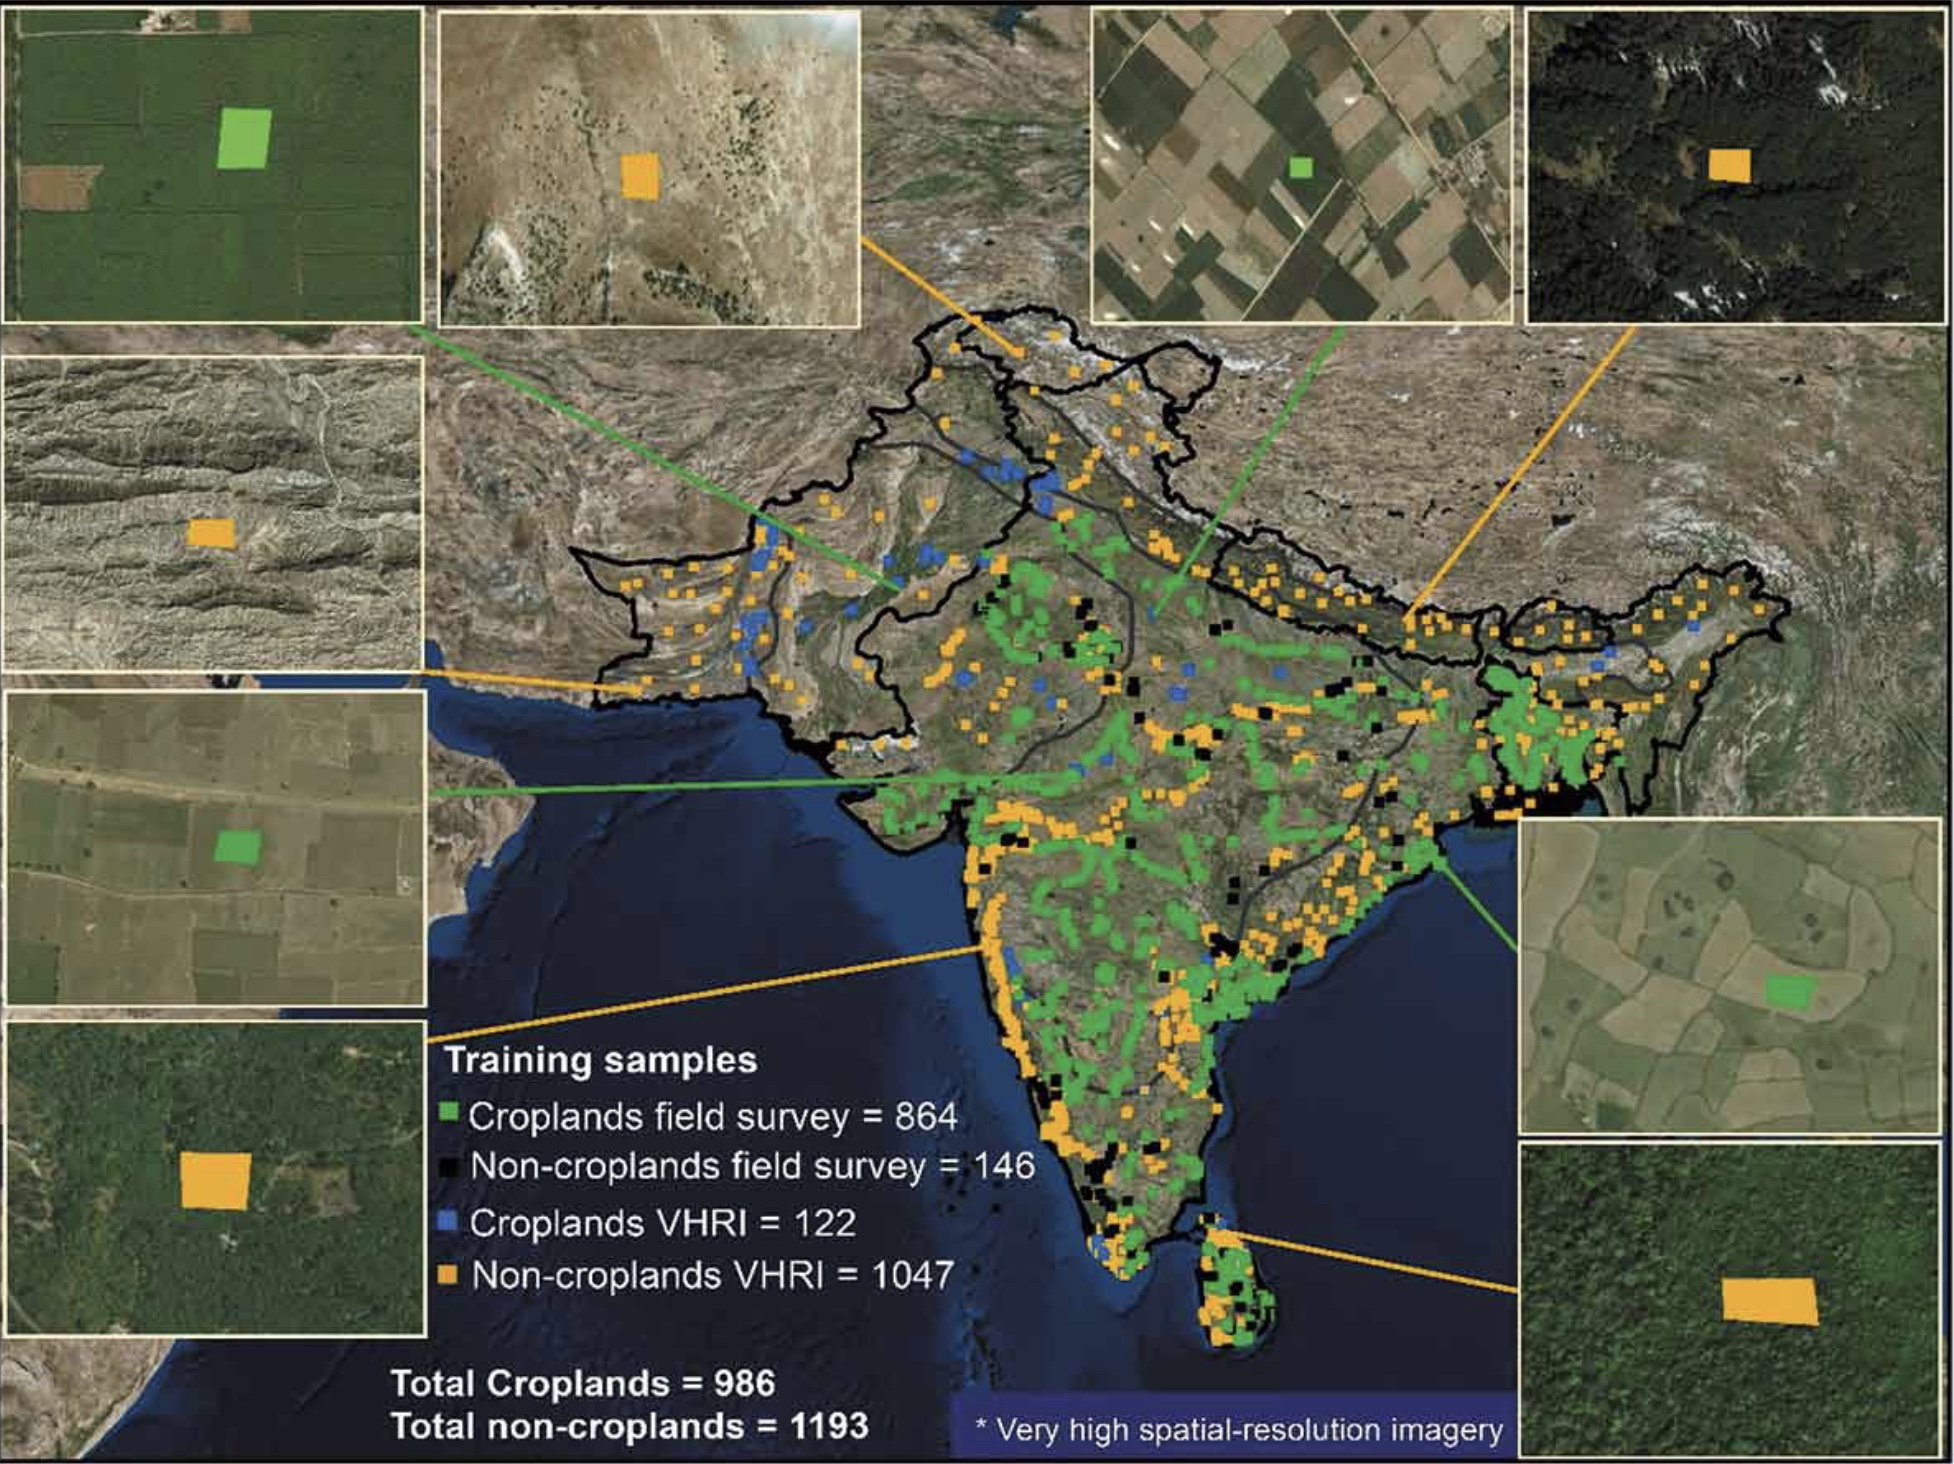 Image shows a map of India and some examples of the high-resolution images used to train machine learning algorithms to identify cropland areas.